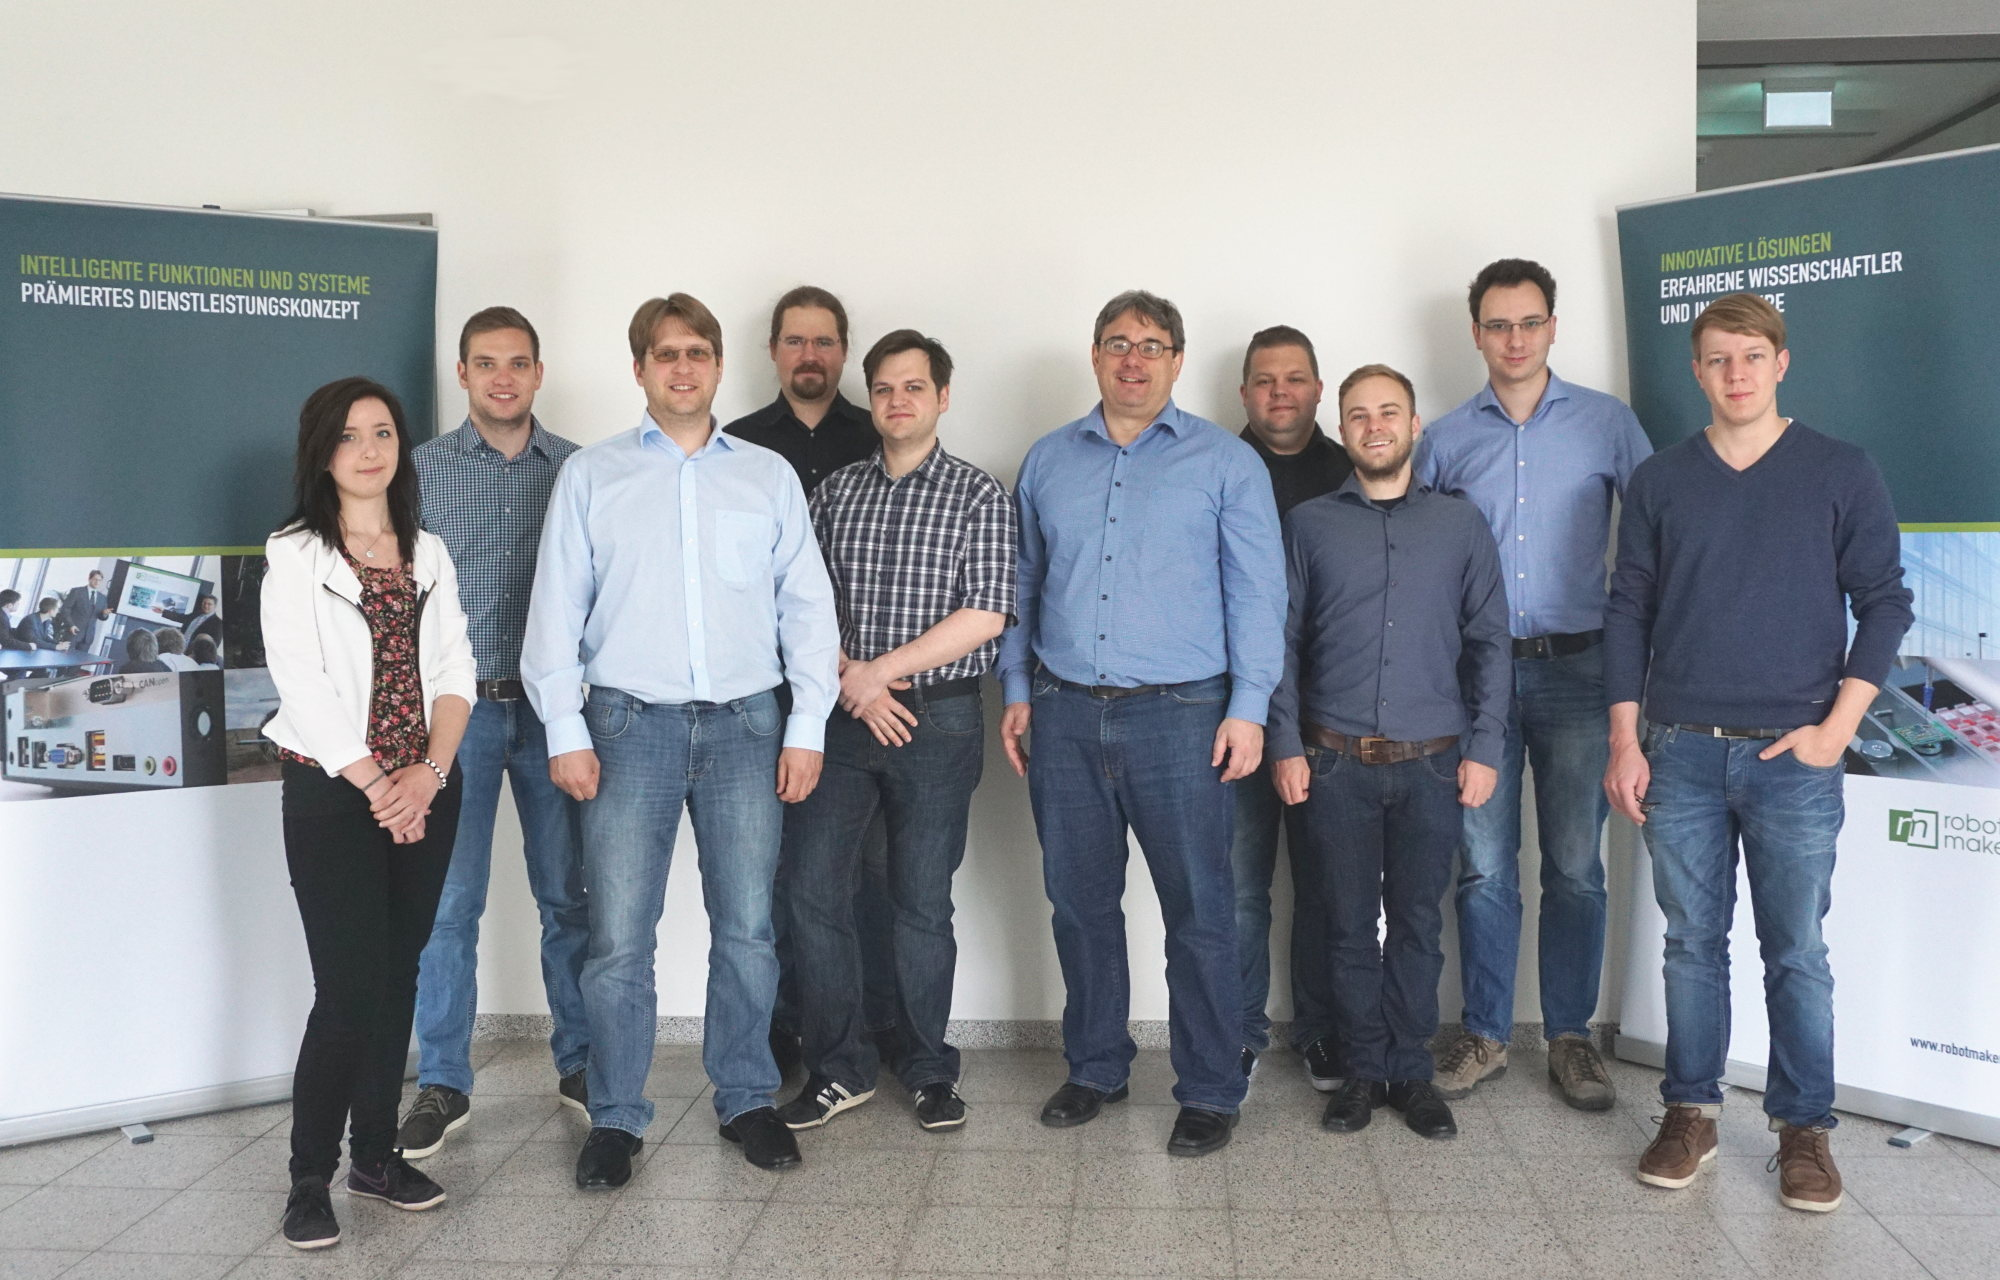 Robot Makers GmbH celebrates its 5th anniversary